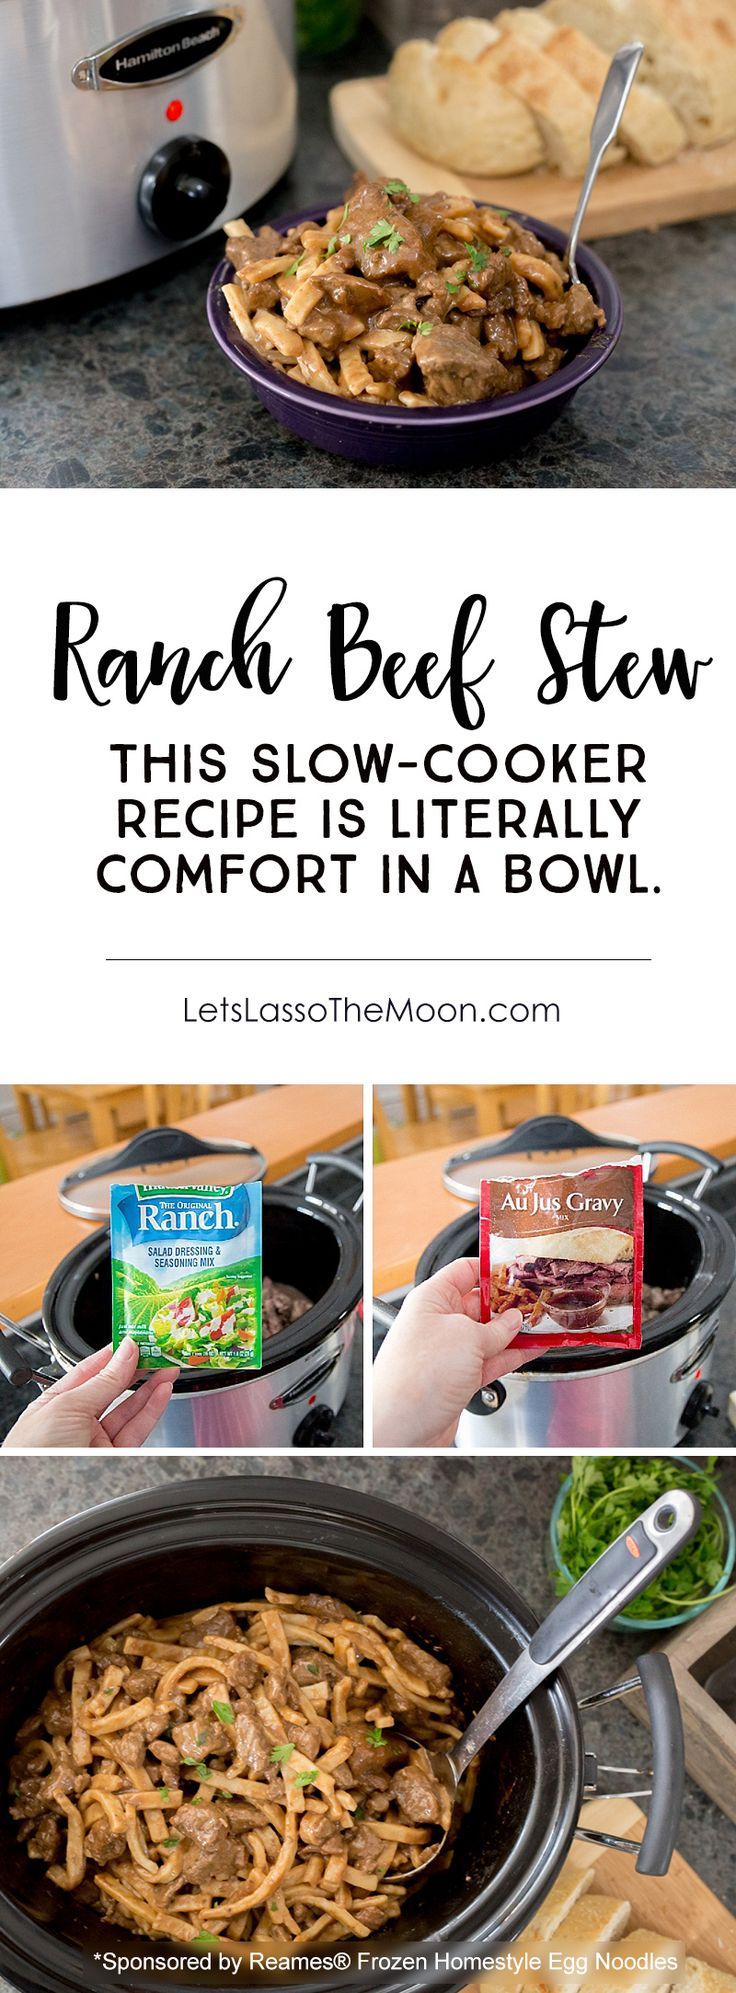 The flavorful Ranch Beef Stew is a super easy weekday dinner recipe, but is also perfect for a family get together. This classic crock pot recipe is transformed with a few unexpected ingredients (Hint: it is not what you expect). Served with frozen egg noodles, it is the perfect winter meal. Comfort in a bowl. *My family REALLY liked this one!